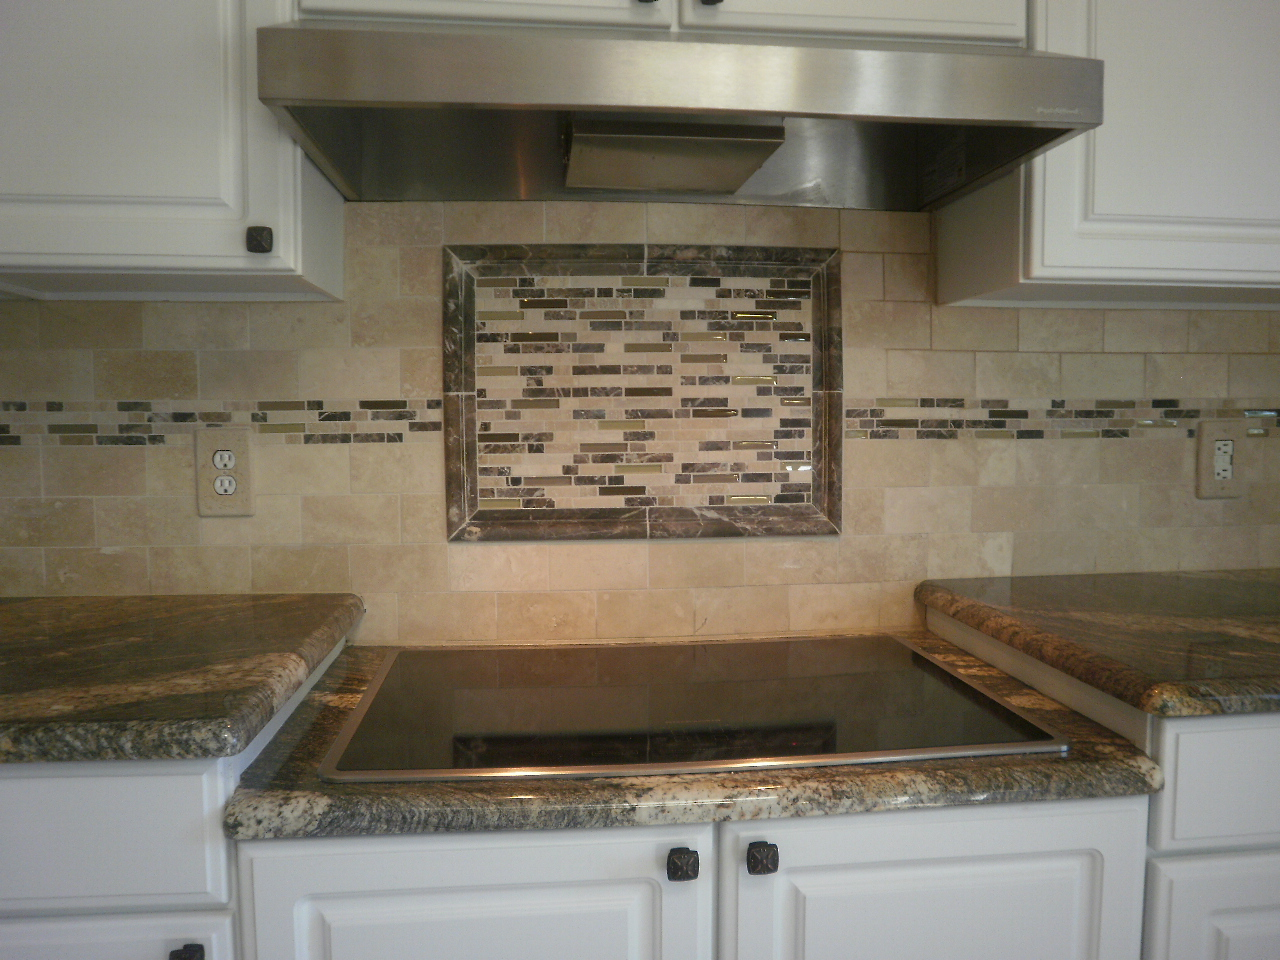 Kitchen Backsplash Ideas Glass Tile Afreakatheart: kitchen backsplash ideas for small kitchens